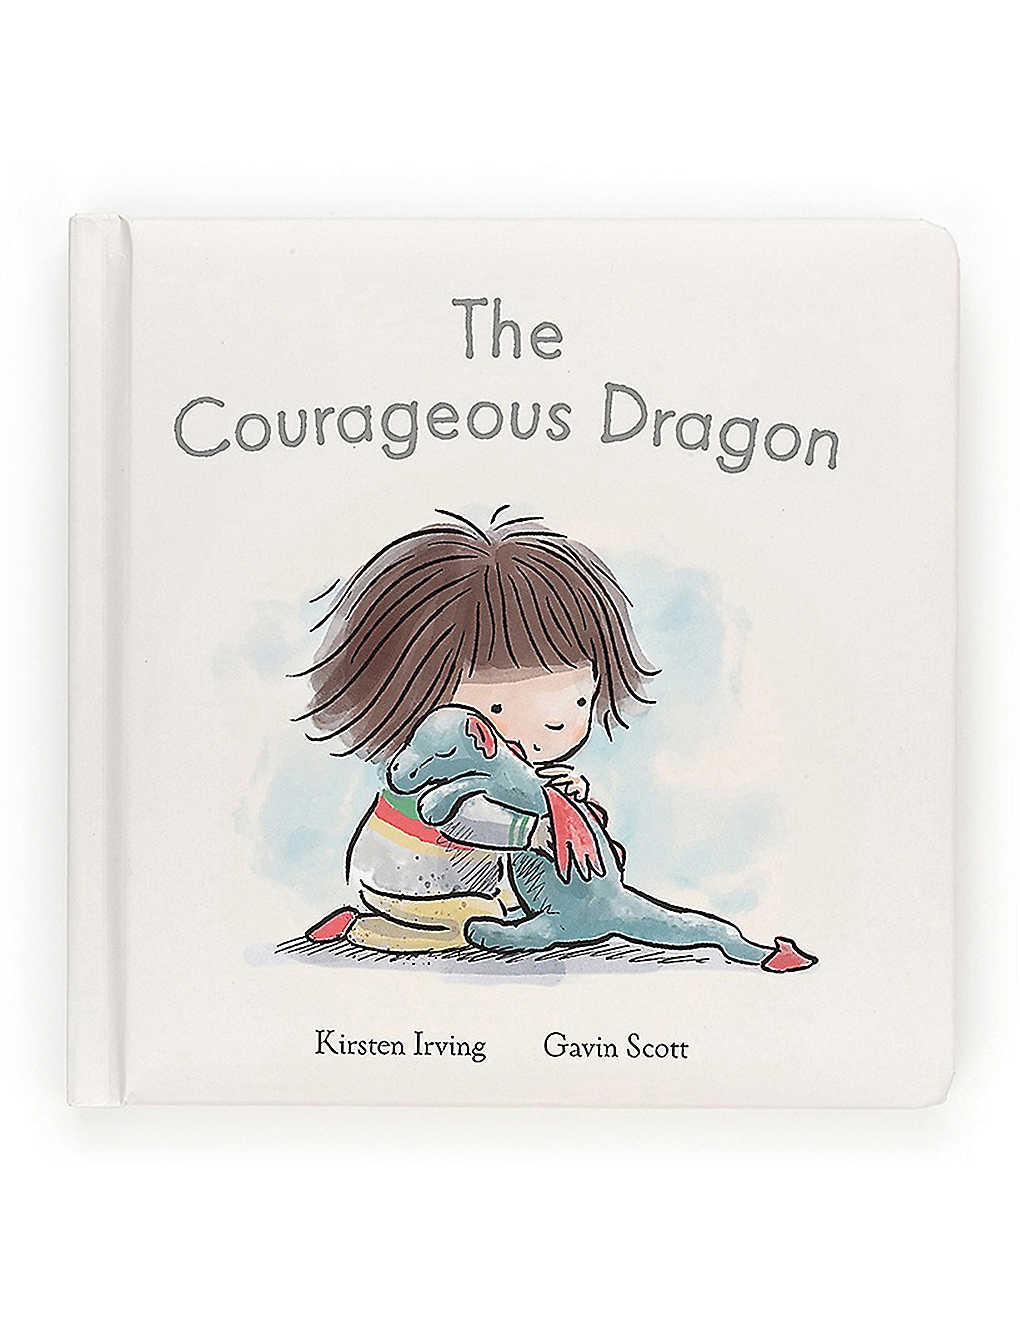 JELLYCAT: The Courageous Dragon story book